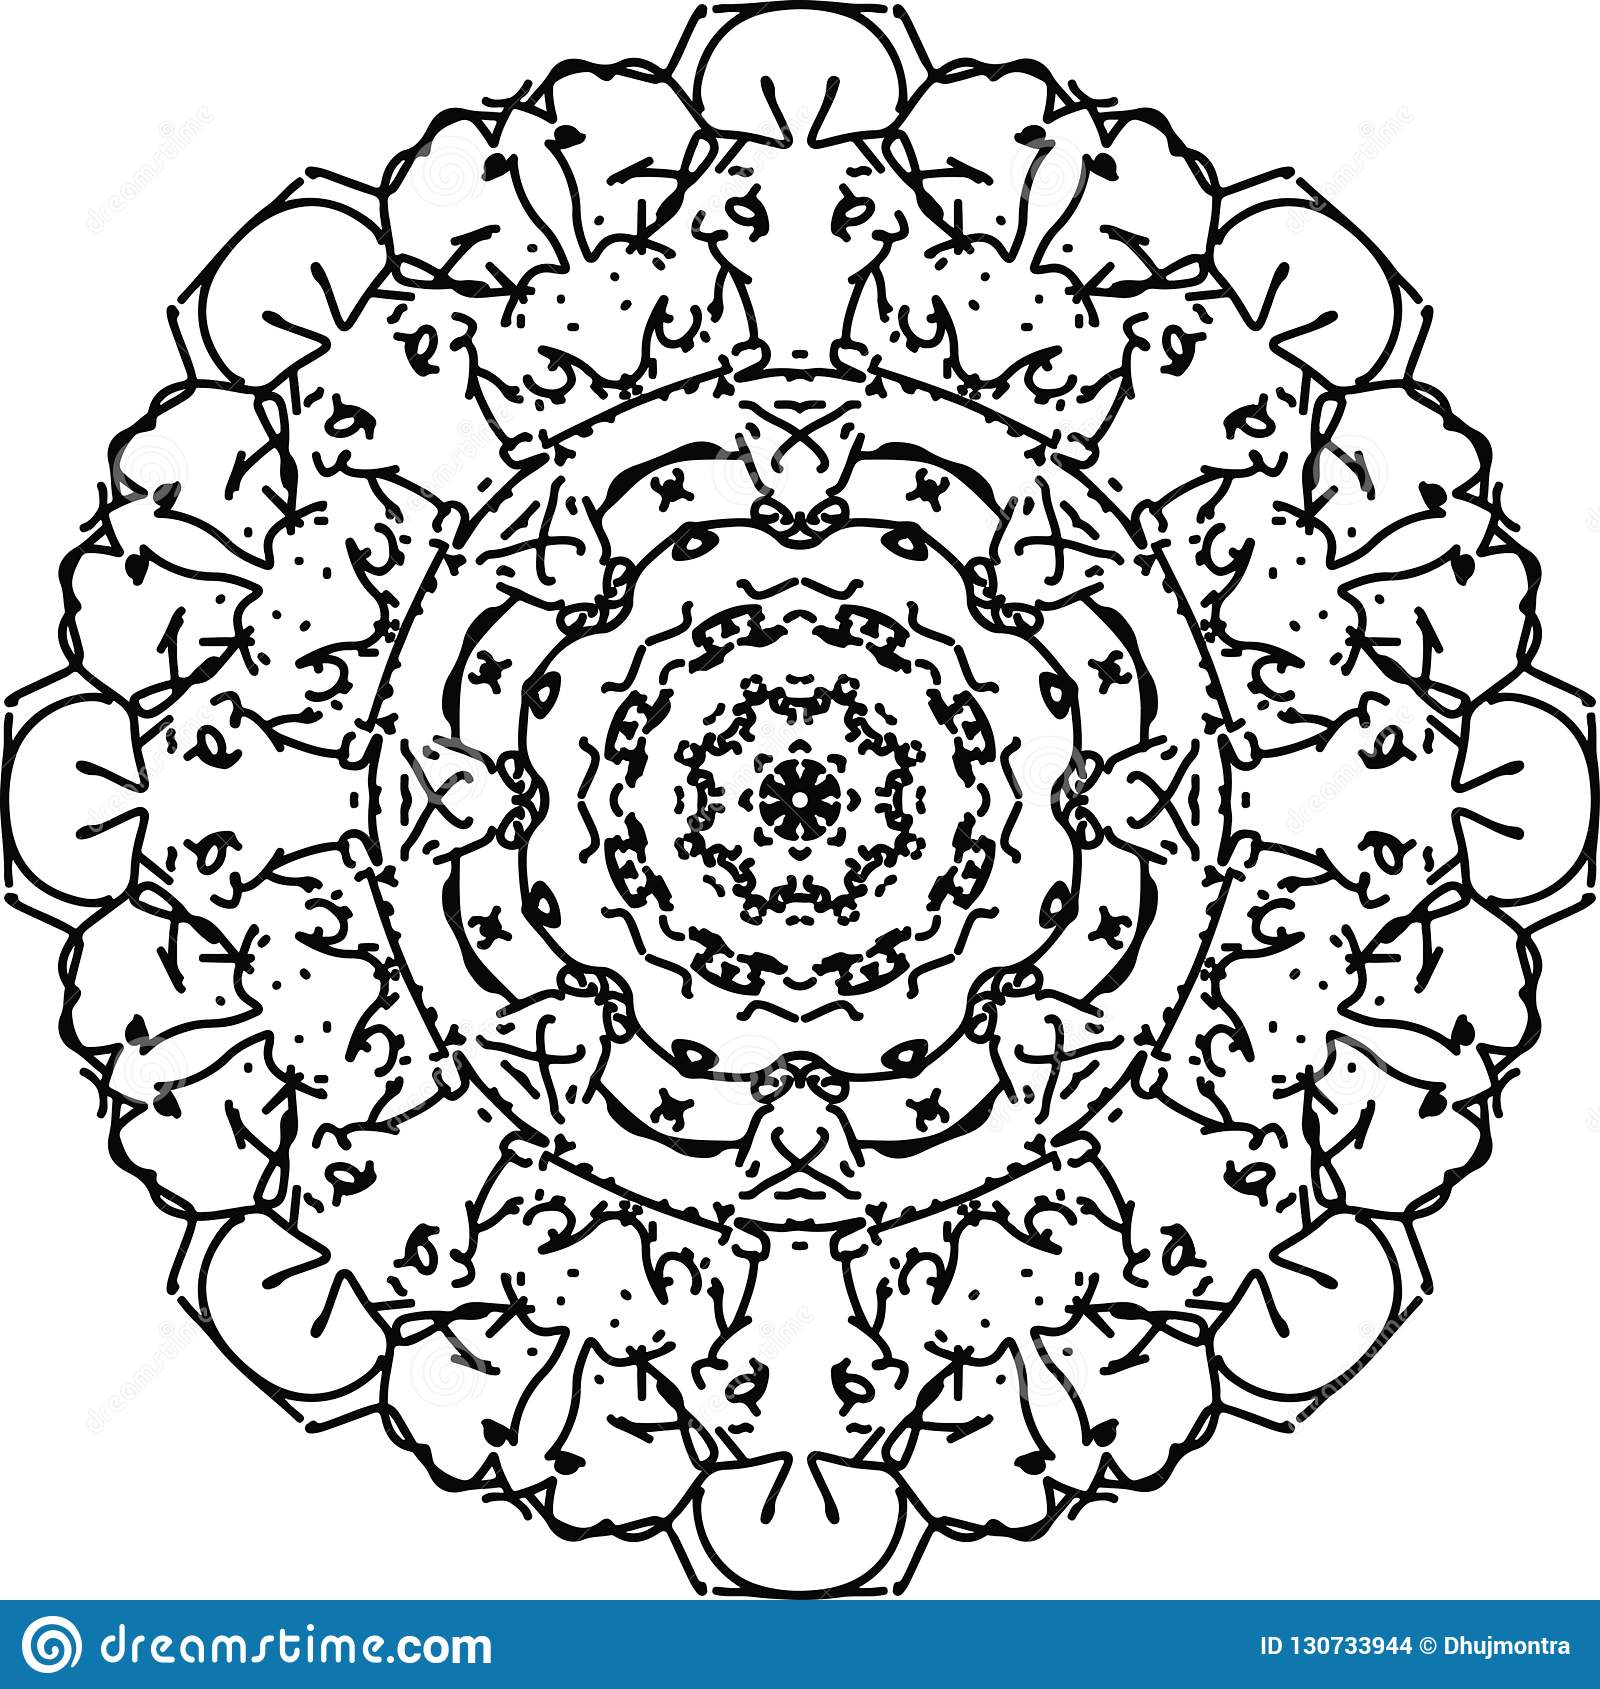 Flower Mandala Tattoo Drawing In Black And White With Wide Life